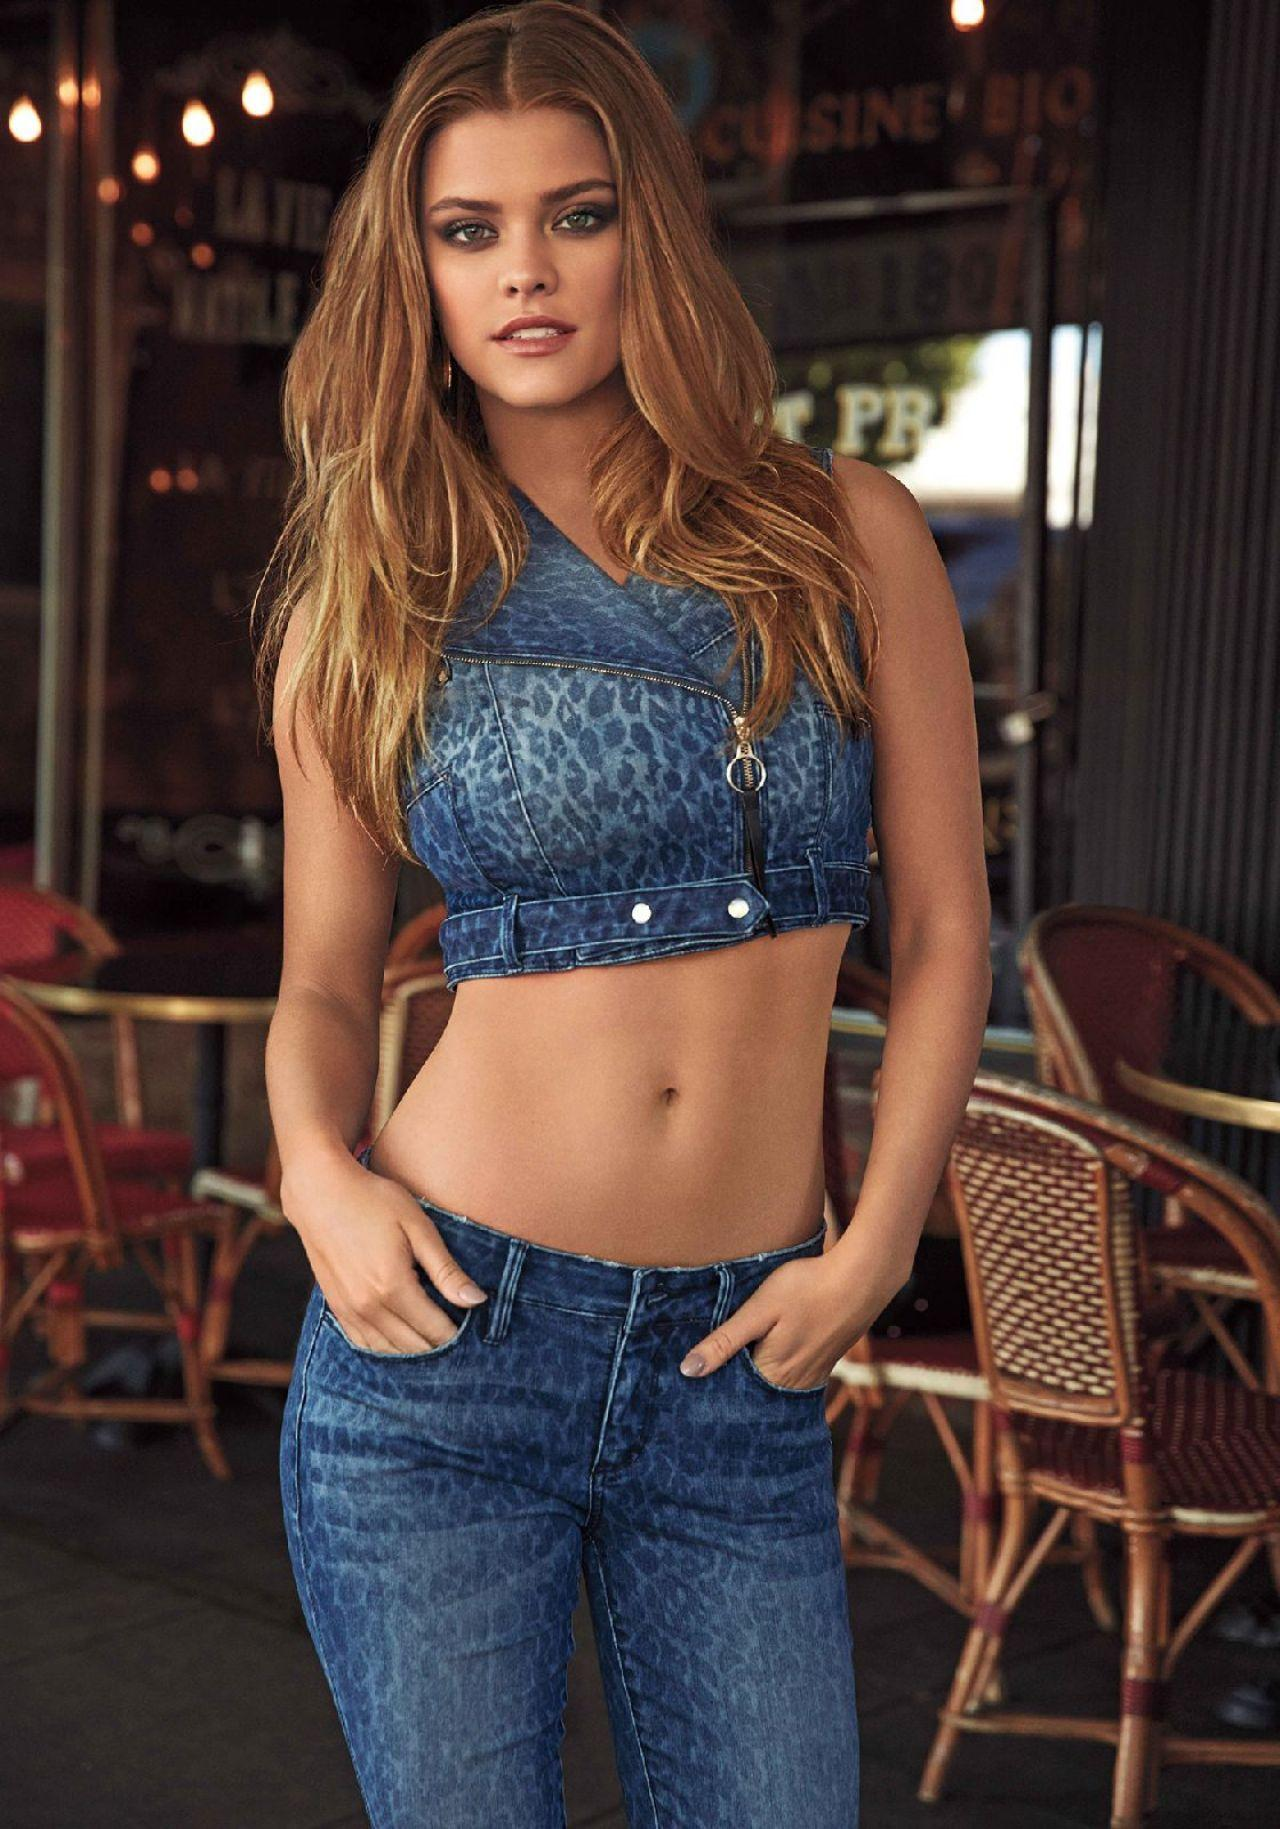 Gujarati Beautiful Girl Wallpaper Nina Agdal Bebe S Just Your Luxe Collection By David Roemer